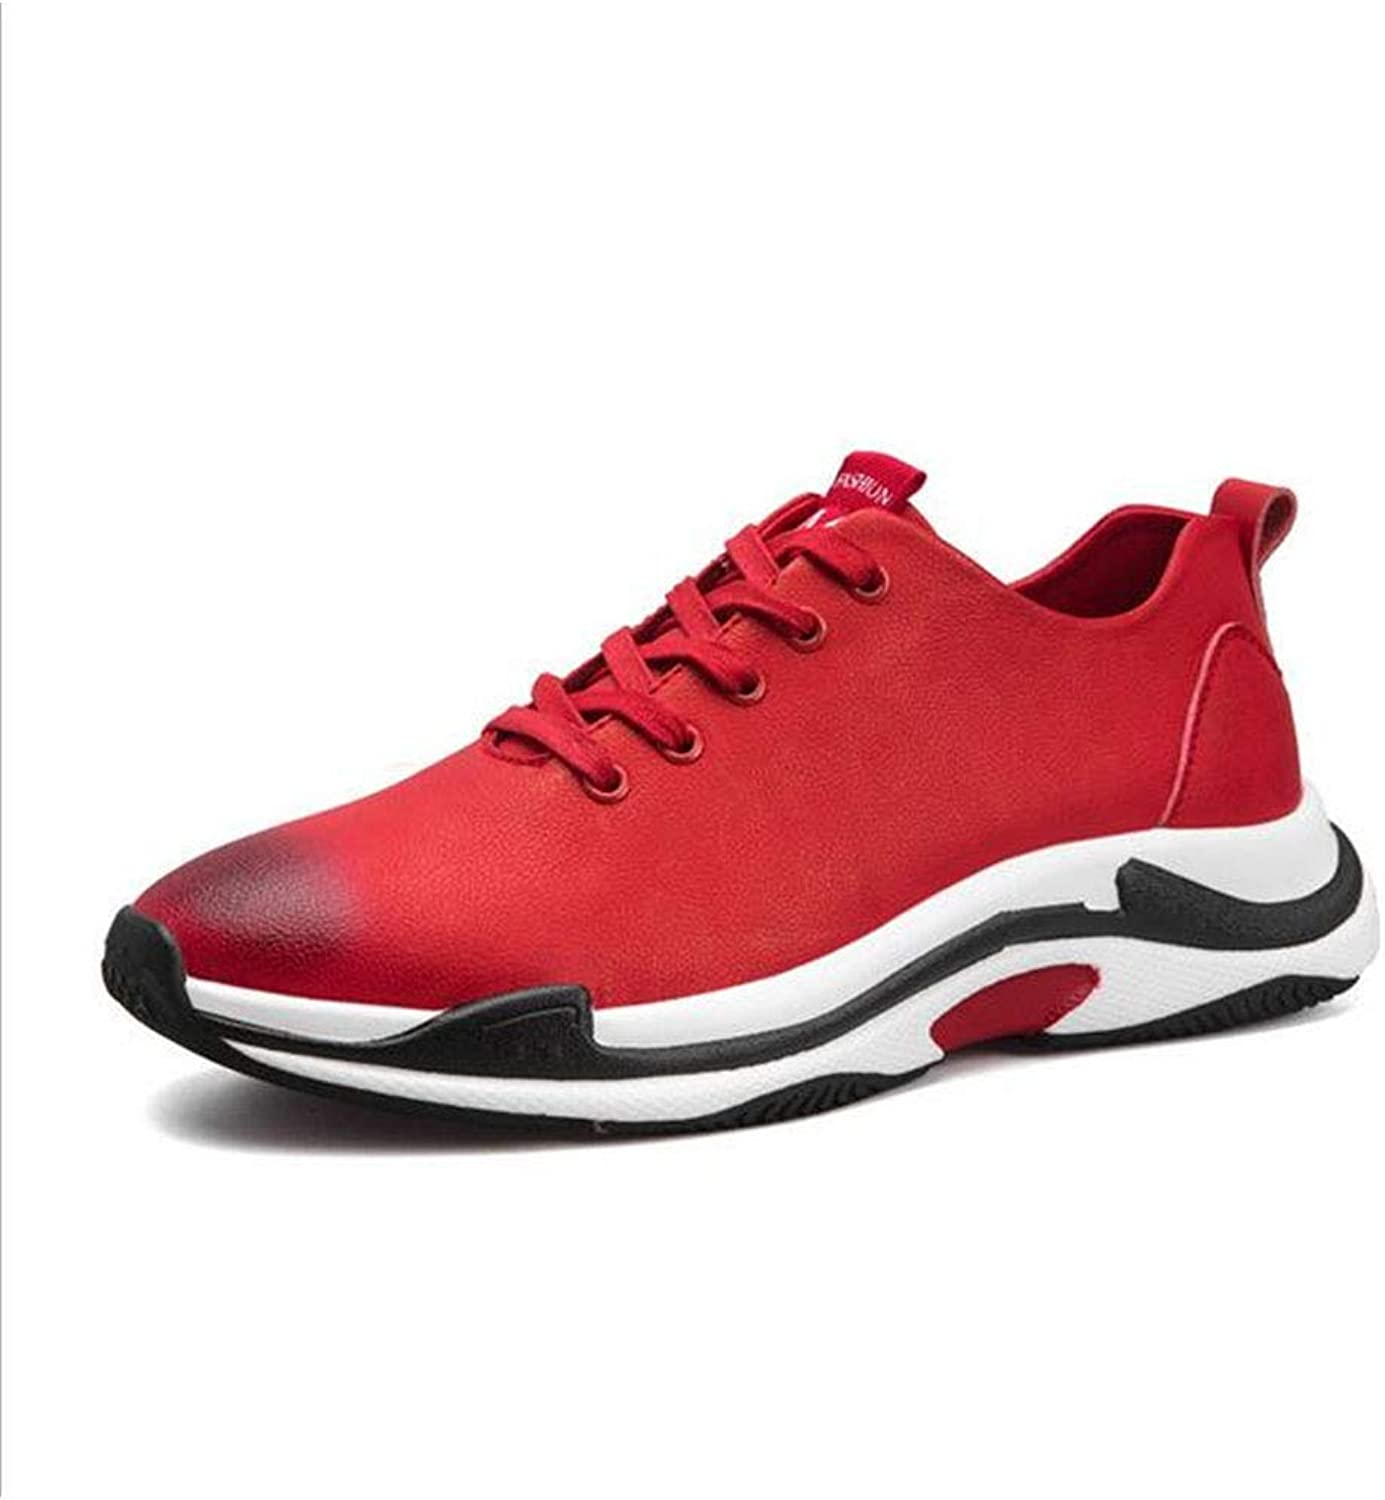 Men's shoes Spring Fall Fashion Trend shoes New Leather Sneakers Anti-Slip Lace-up Casual shoes